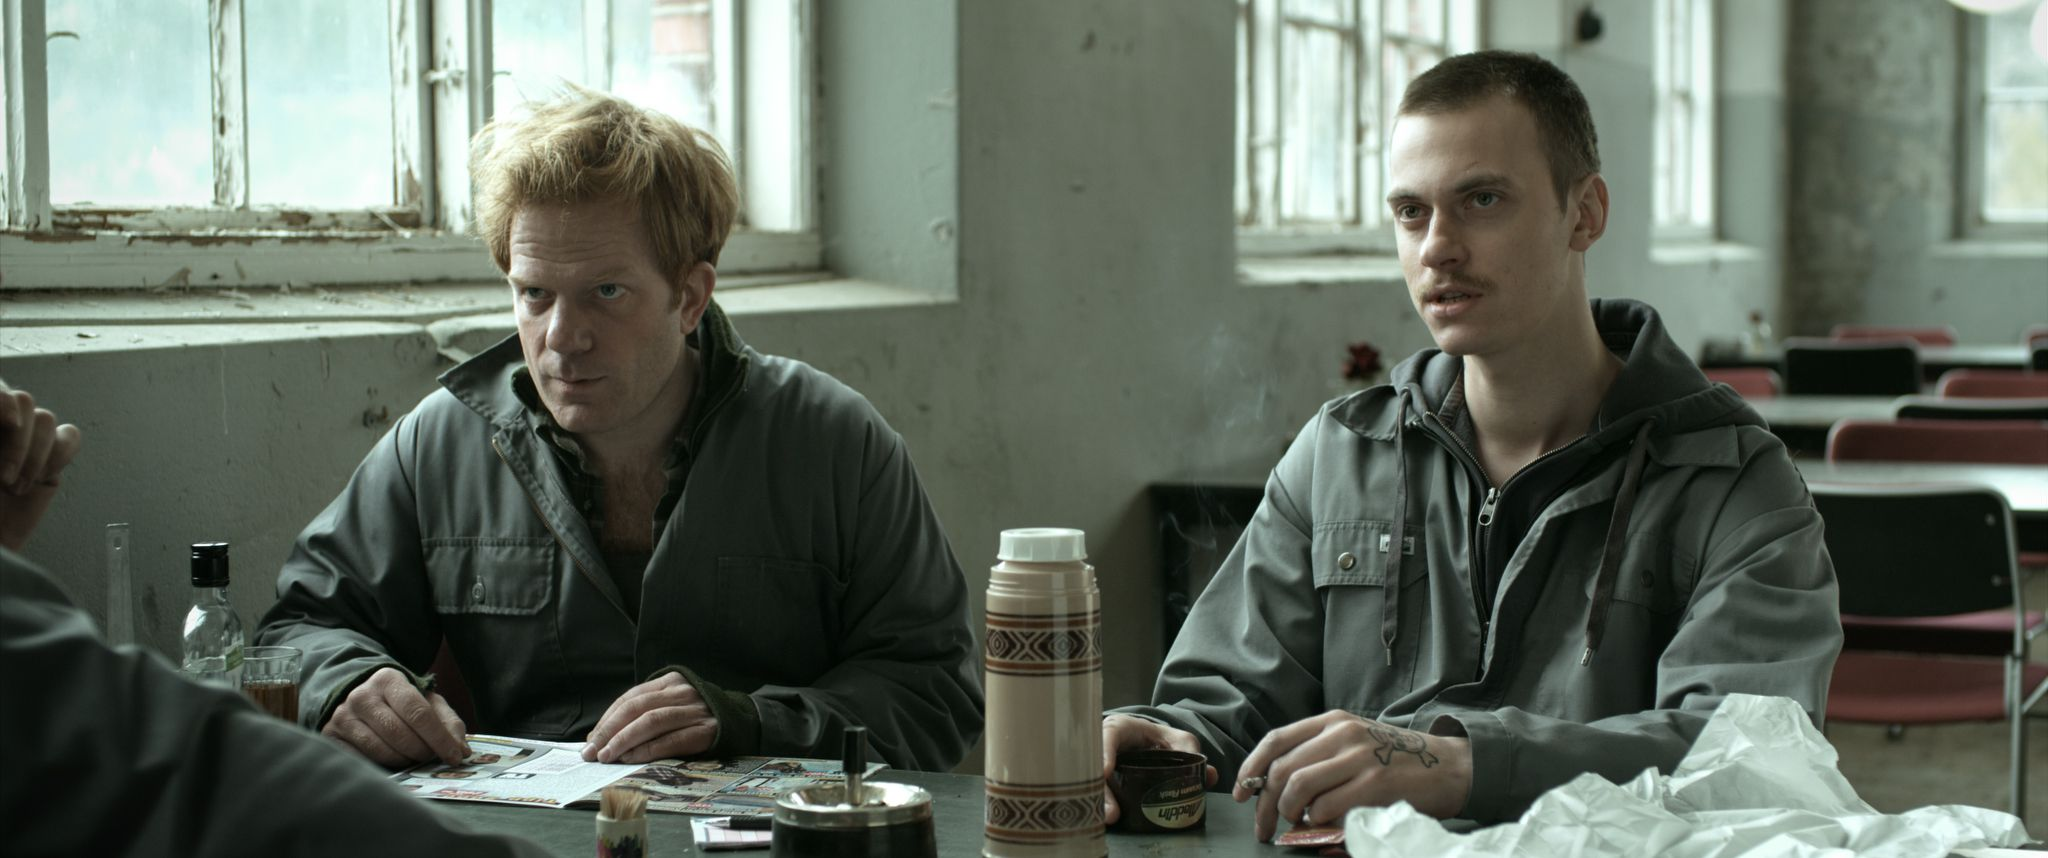 An image from Jackpot